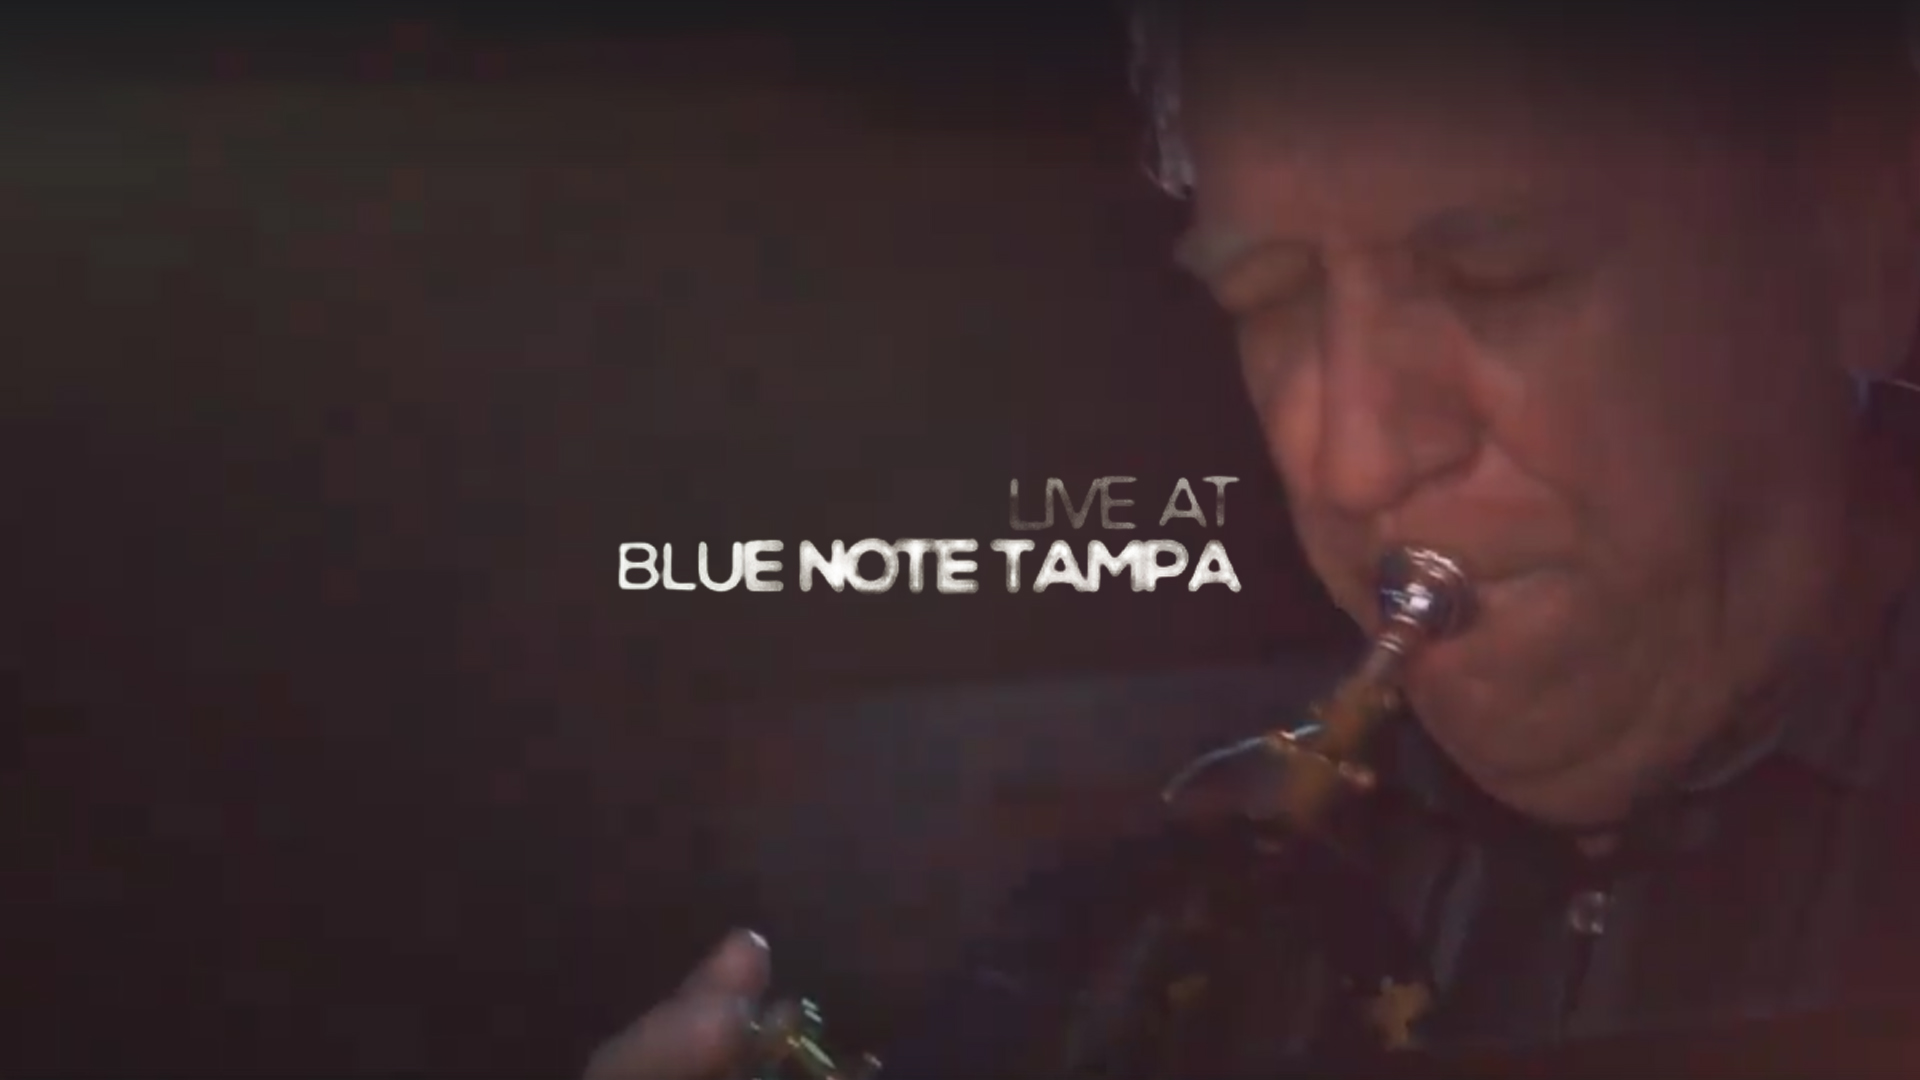 LIVE AT THE BLUE NOTE: Phil Provenzano and the Jazz Experience